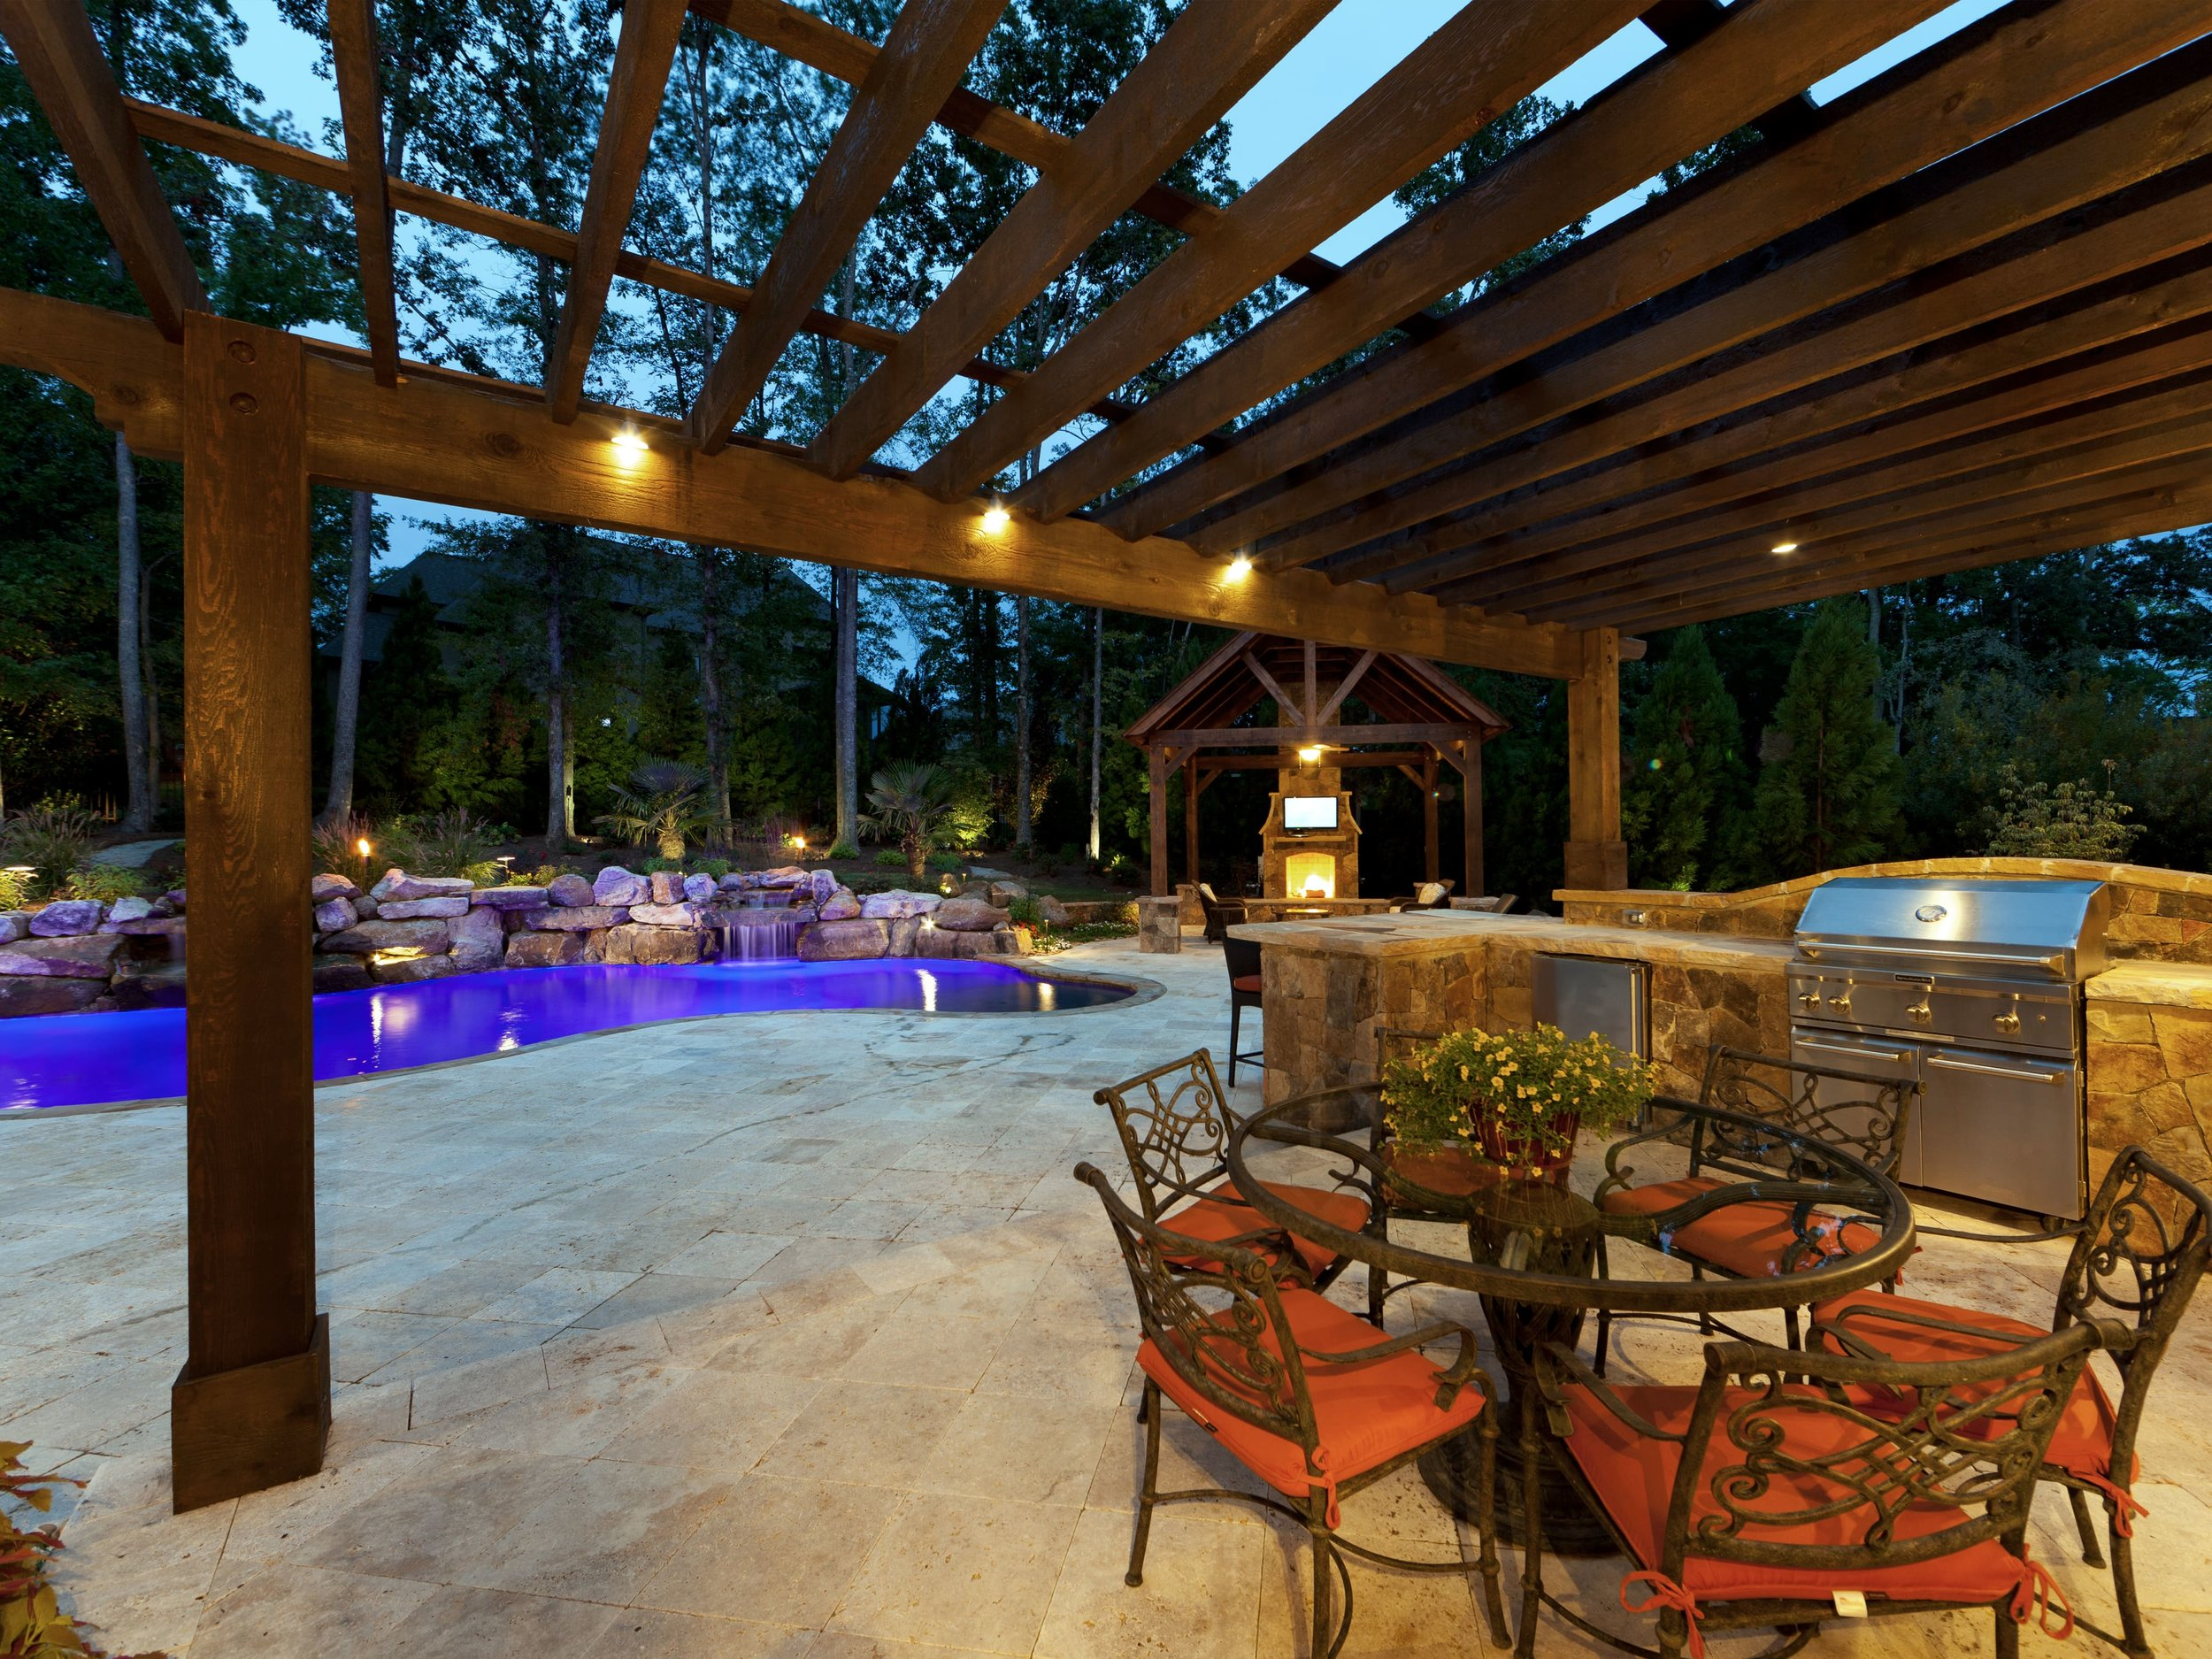 OUTDOOR LIVING - If you can dream it, we can design and build it. Are you unsure of where to begin? Let us help you design the space and bring your vision to life – together we can make it spectacular.